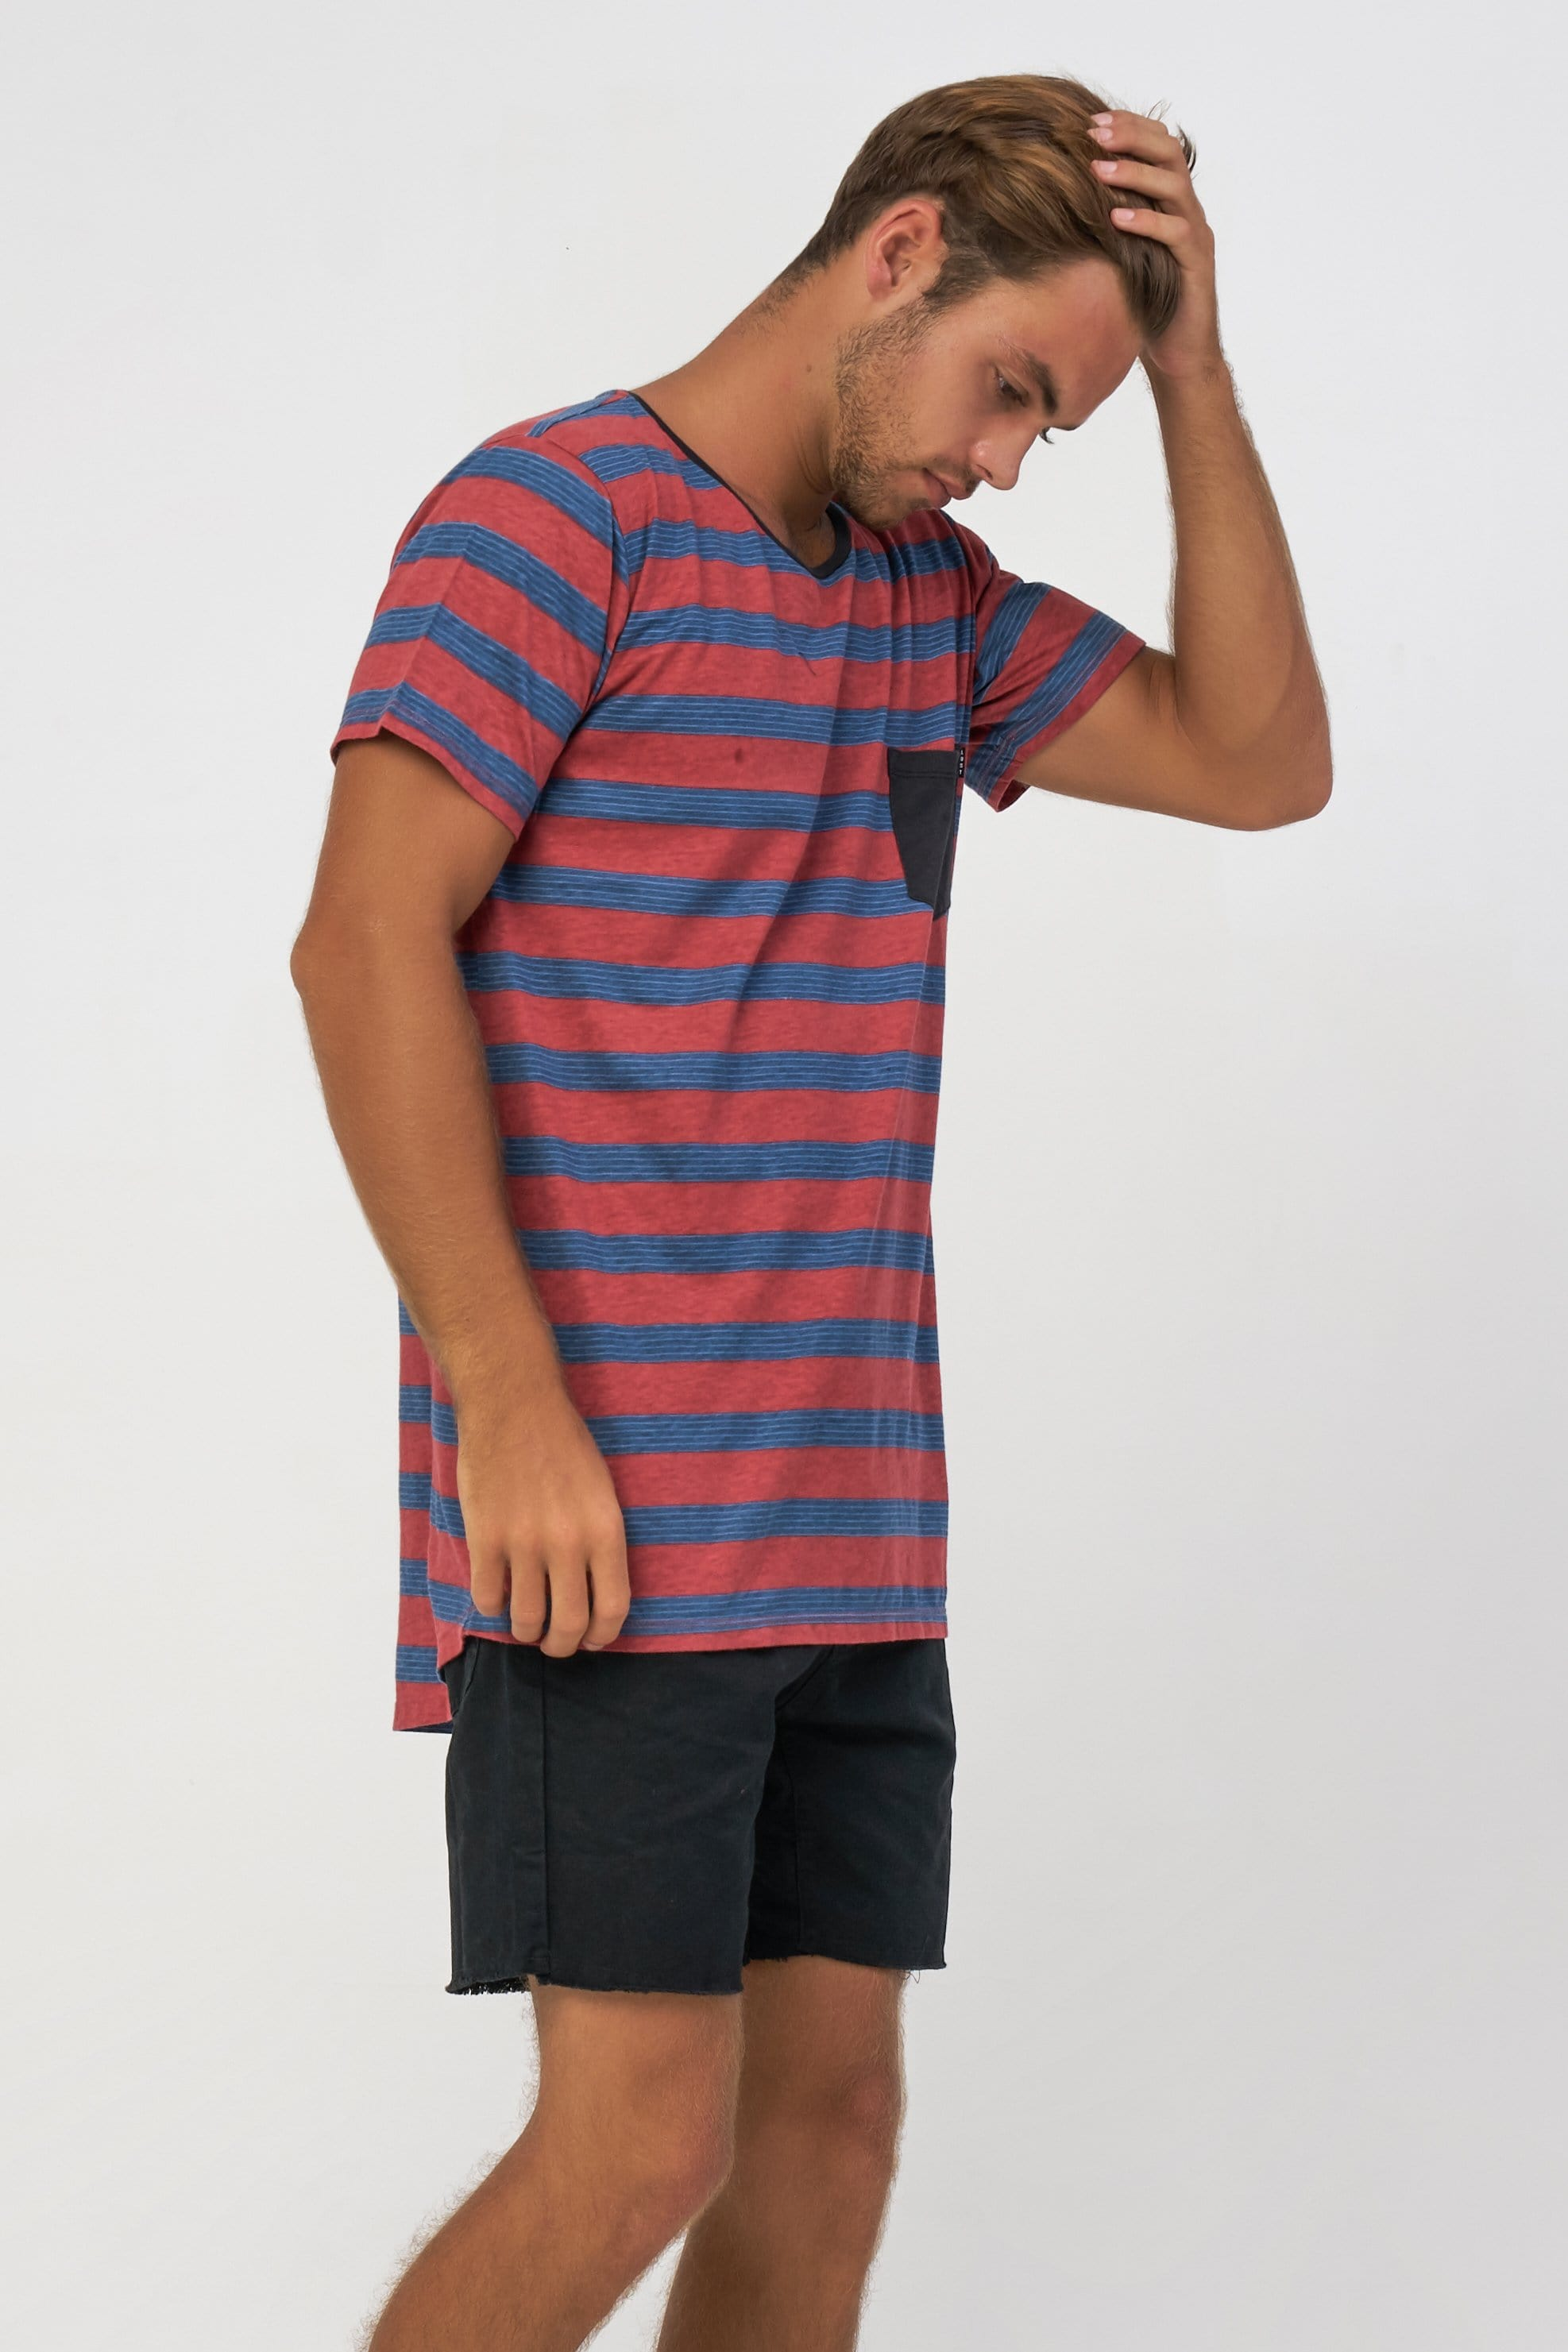 6 Stripe Tee - Man T-Shirt - LOST IN PARADISE